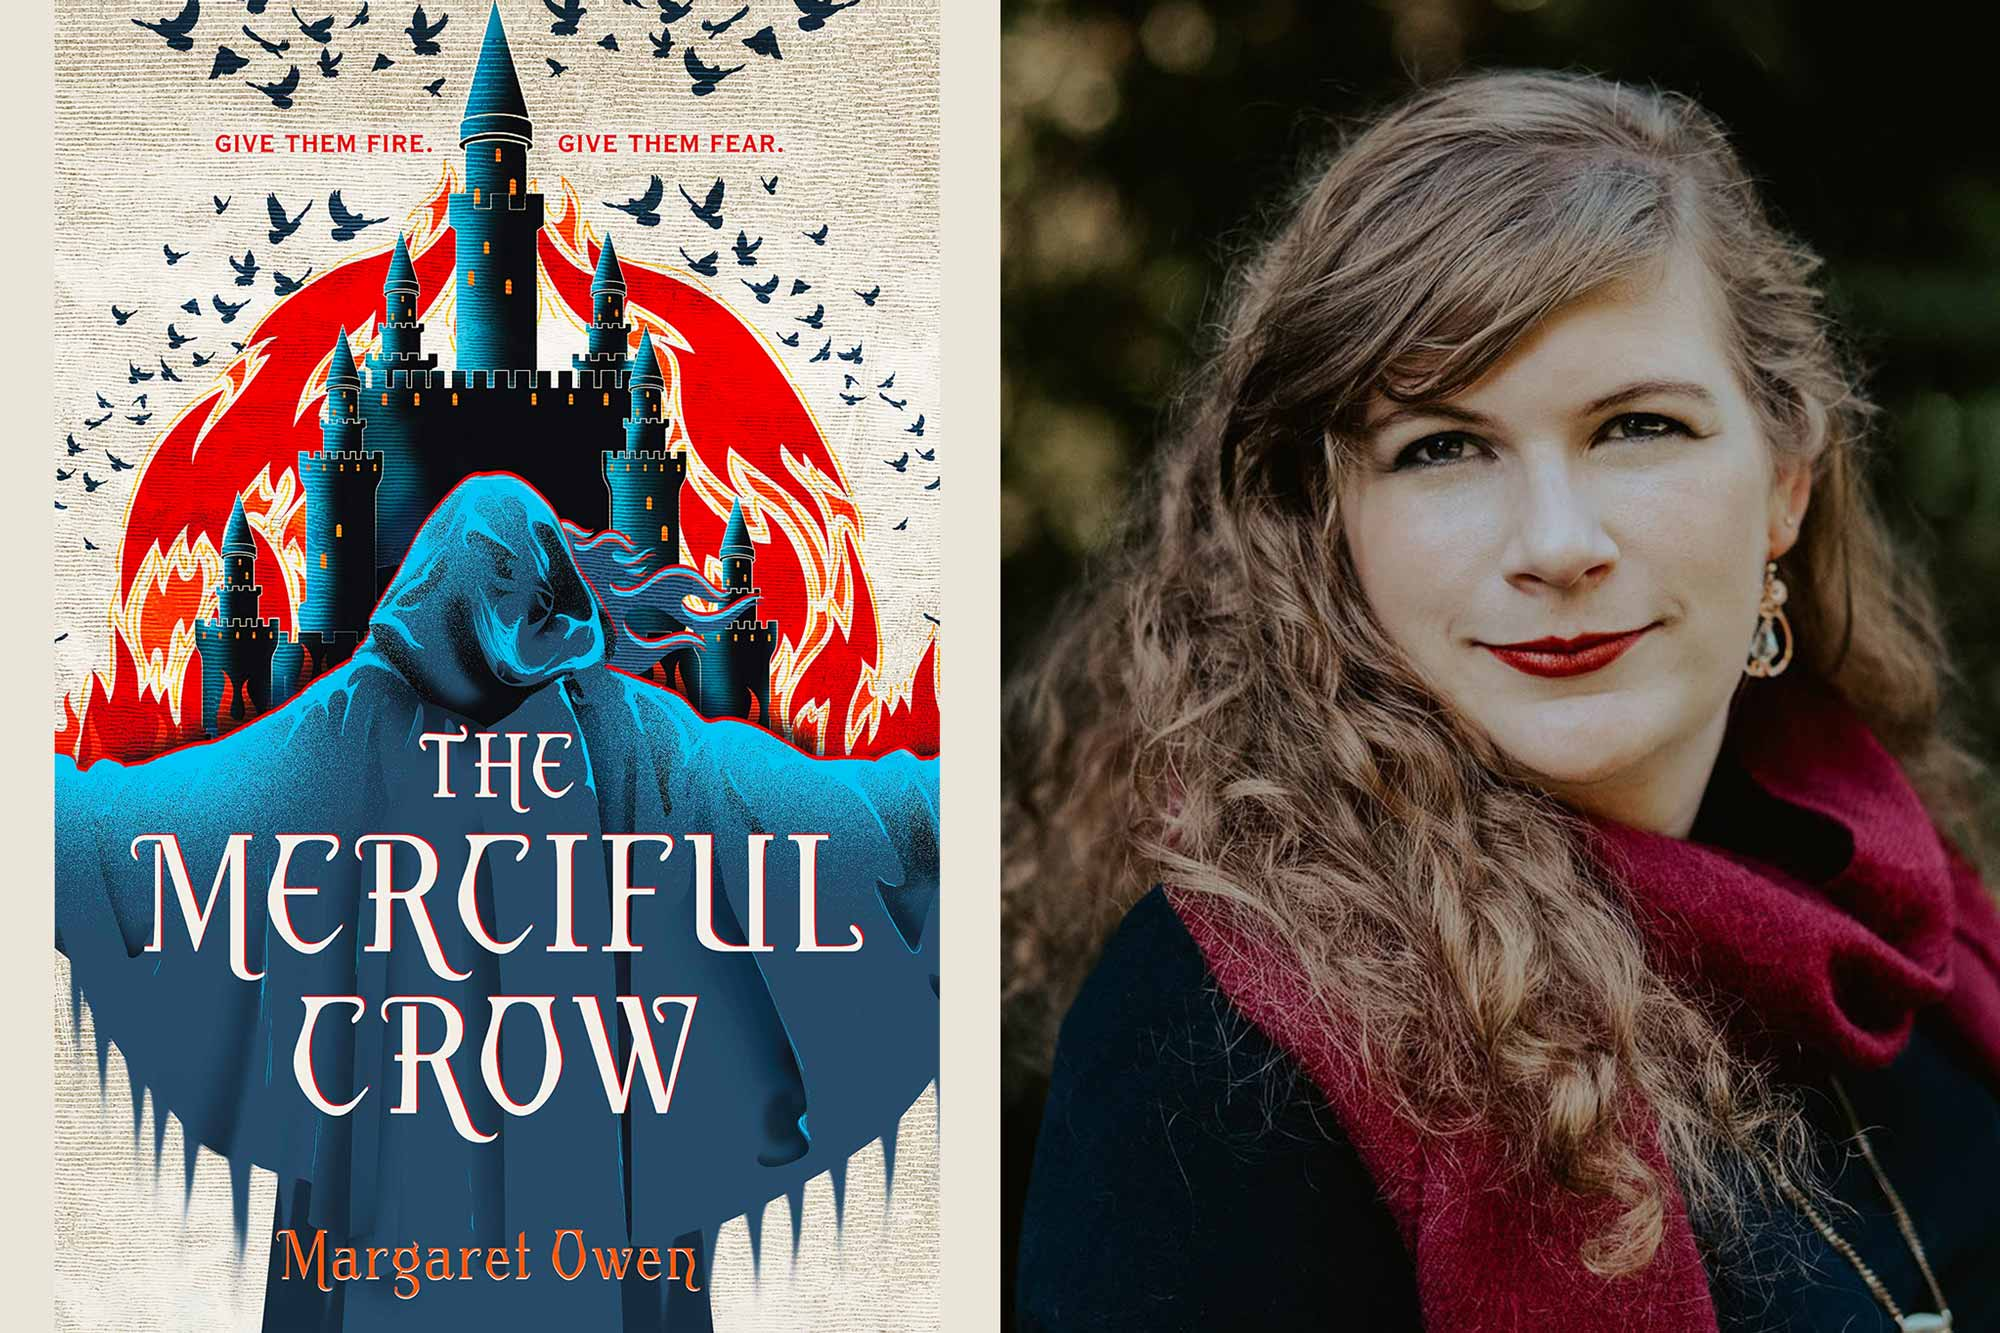 Margaret Owen on The Merciful Crow